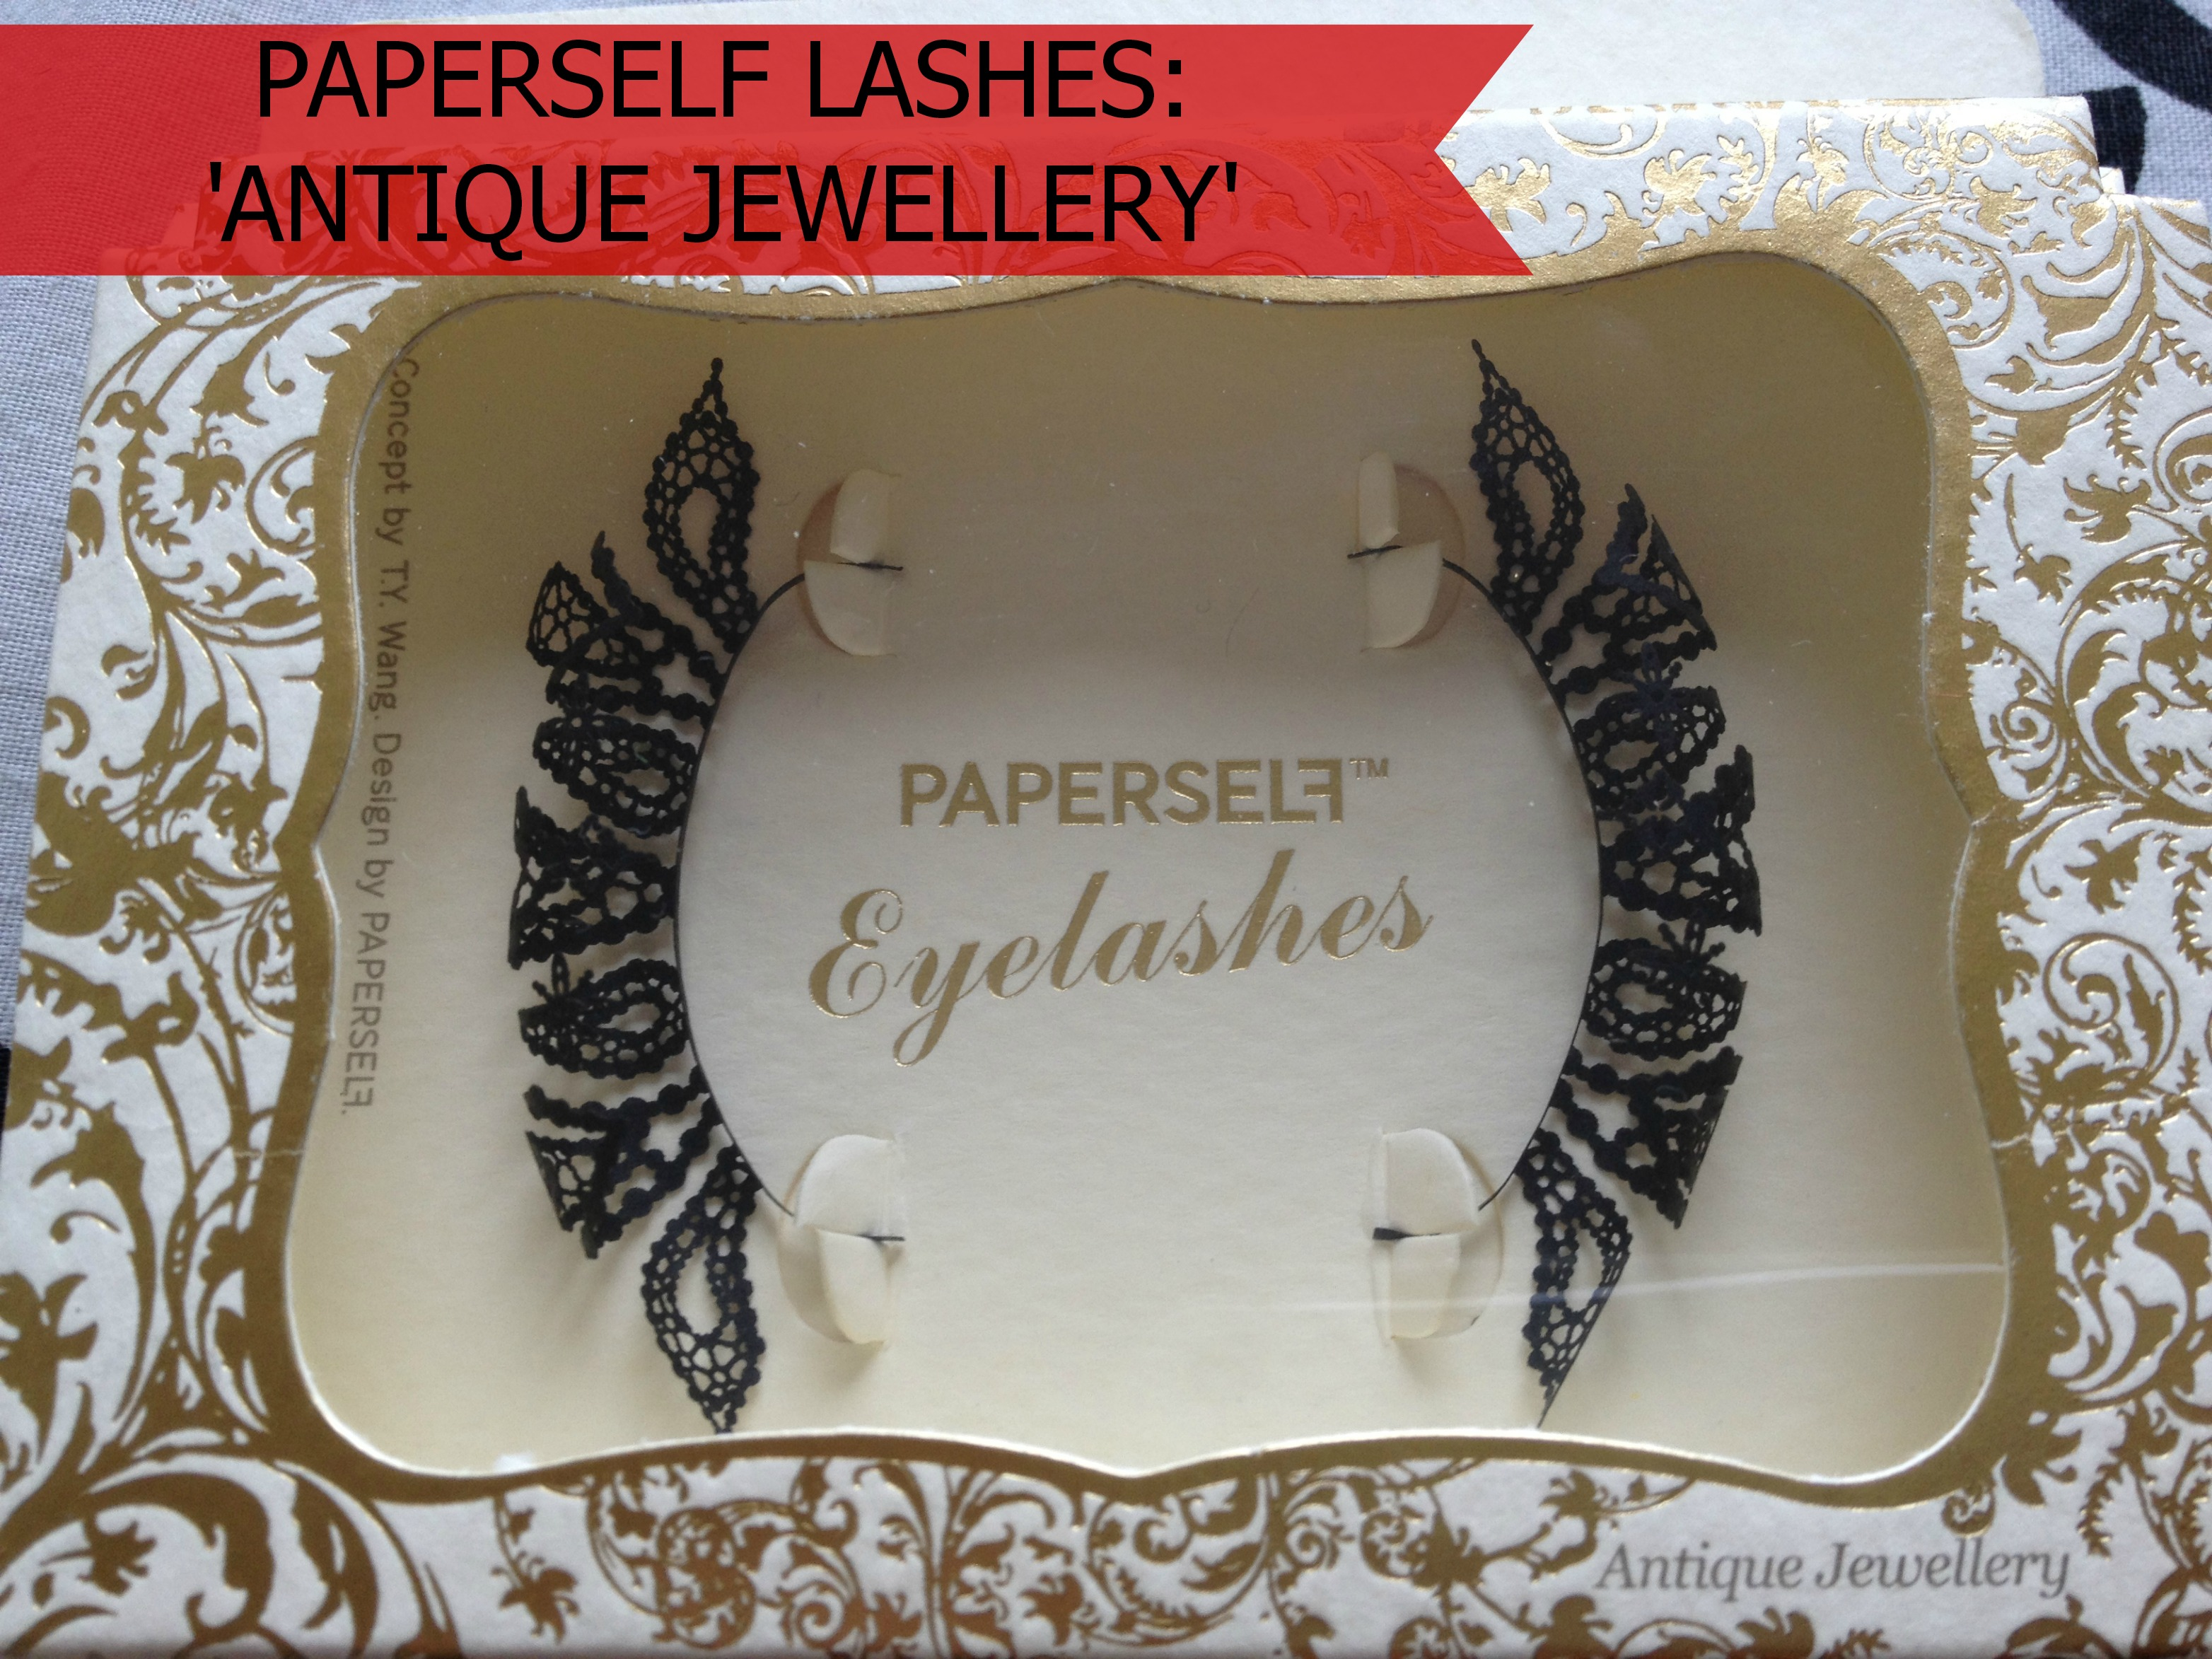 Paperself_Lashes_Antique_Jewellery